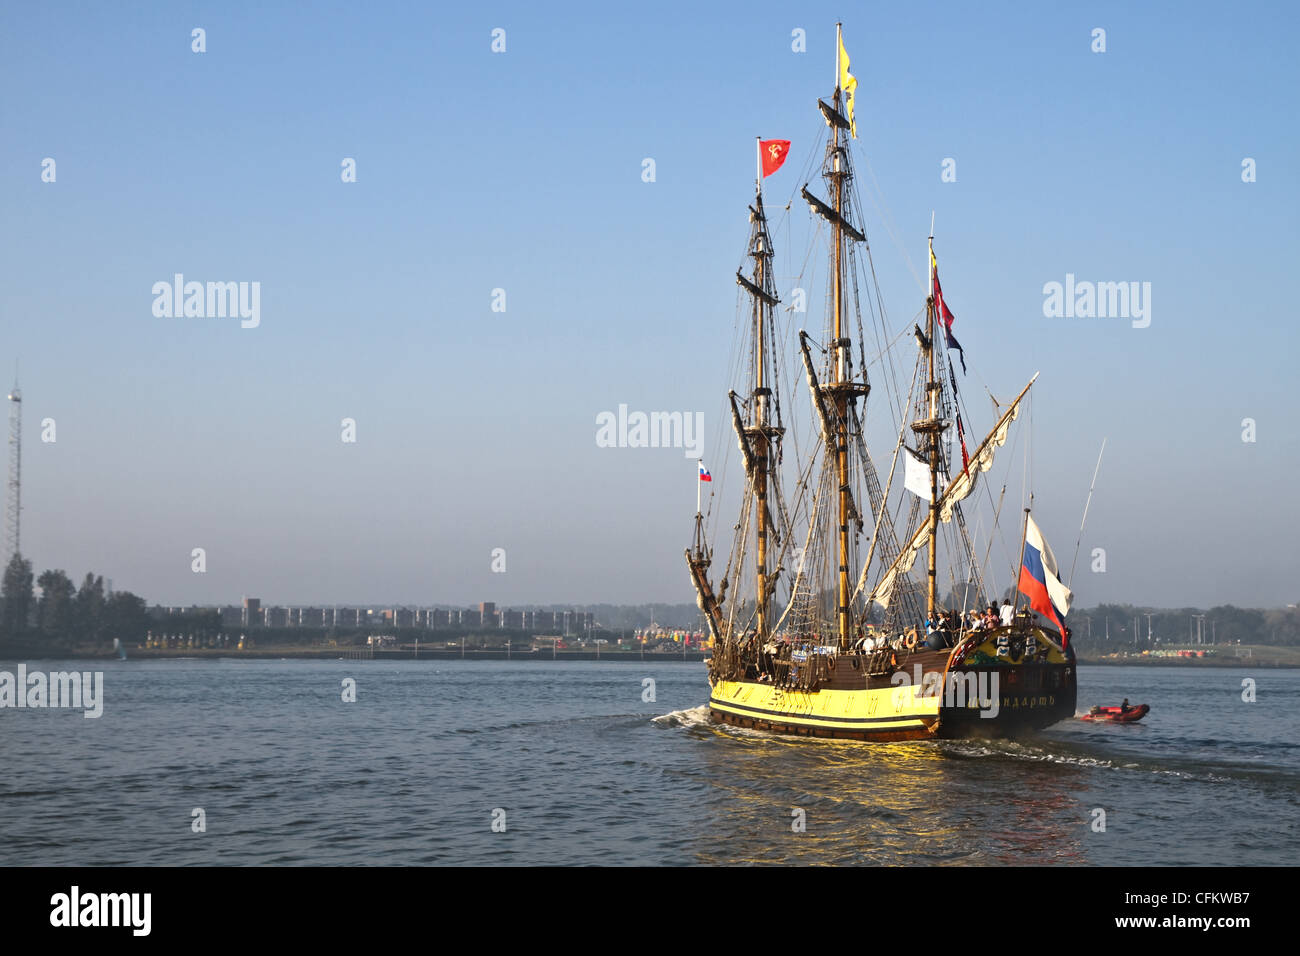 Frigate Shtandart - Russian replica of old warship ...